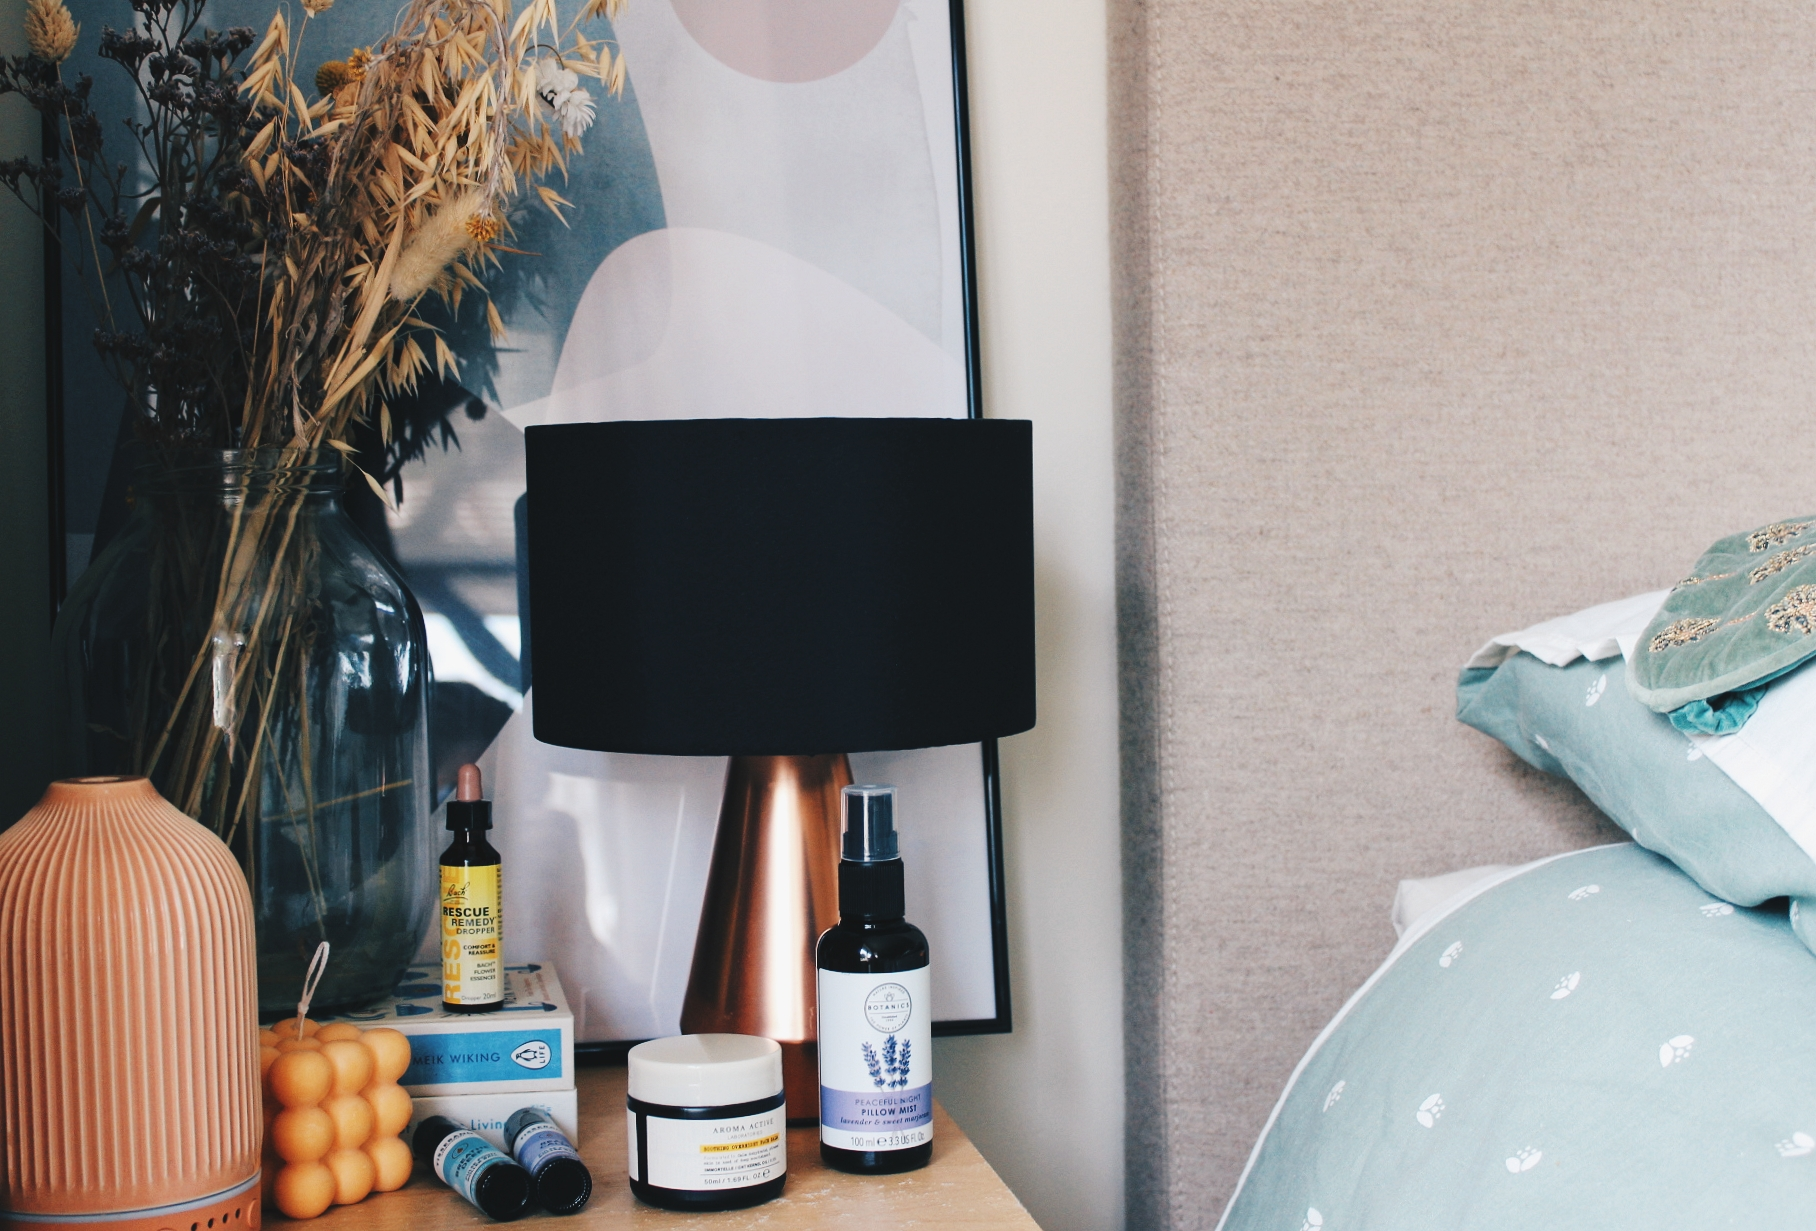 My go-to routine for a blissful slumber